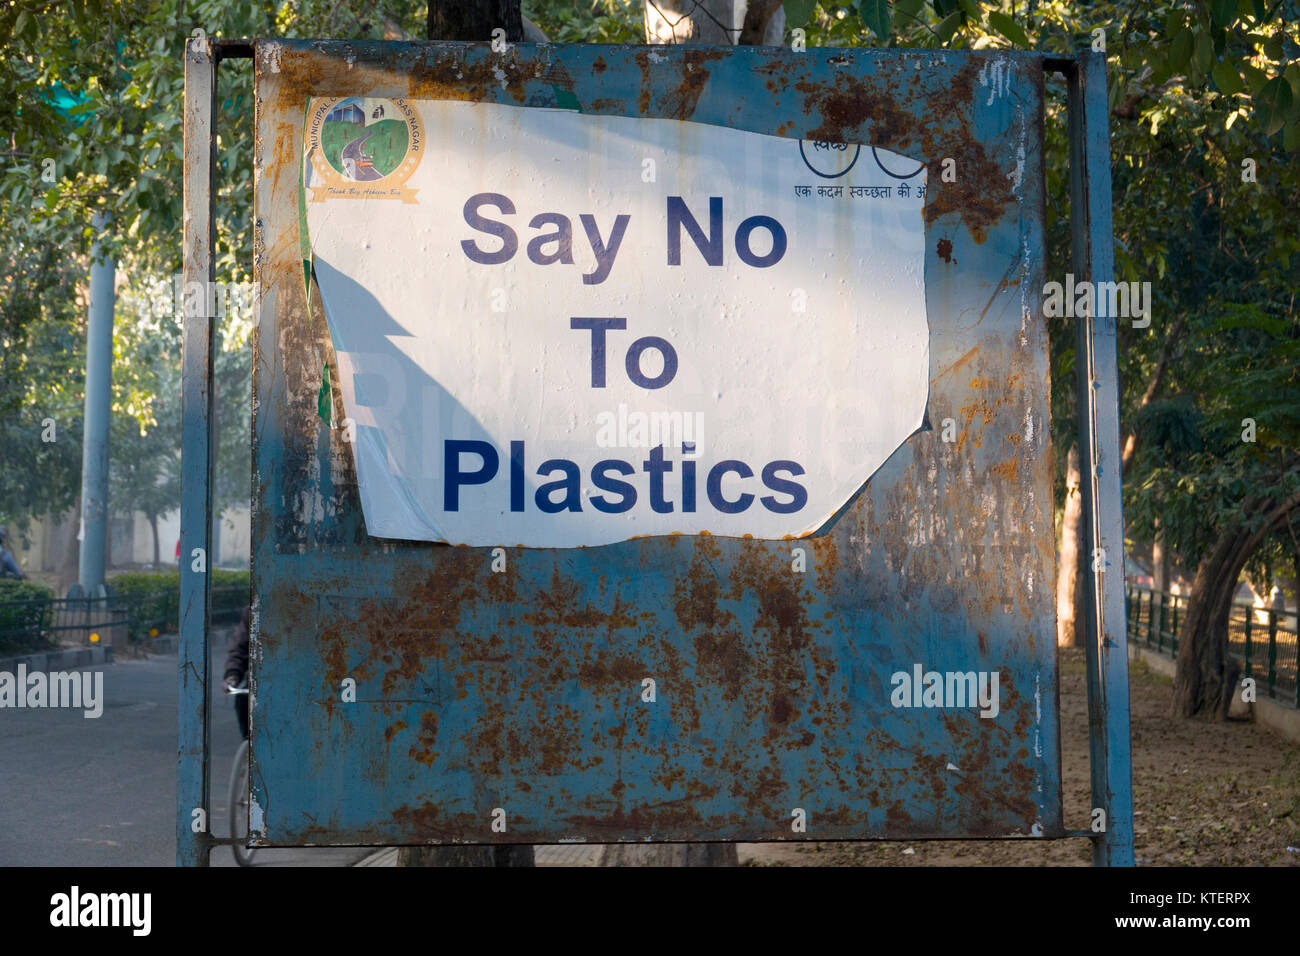 Say no to plastics public information sign in Chandigarh, India - Stock Image